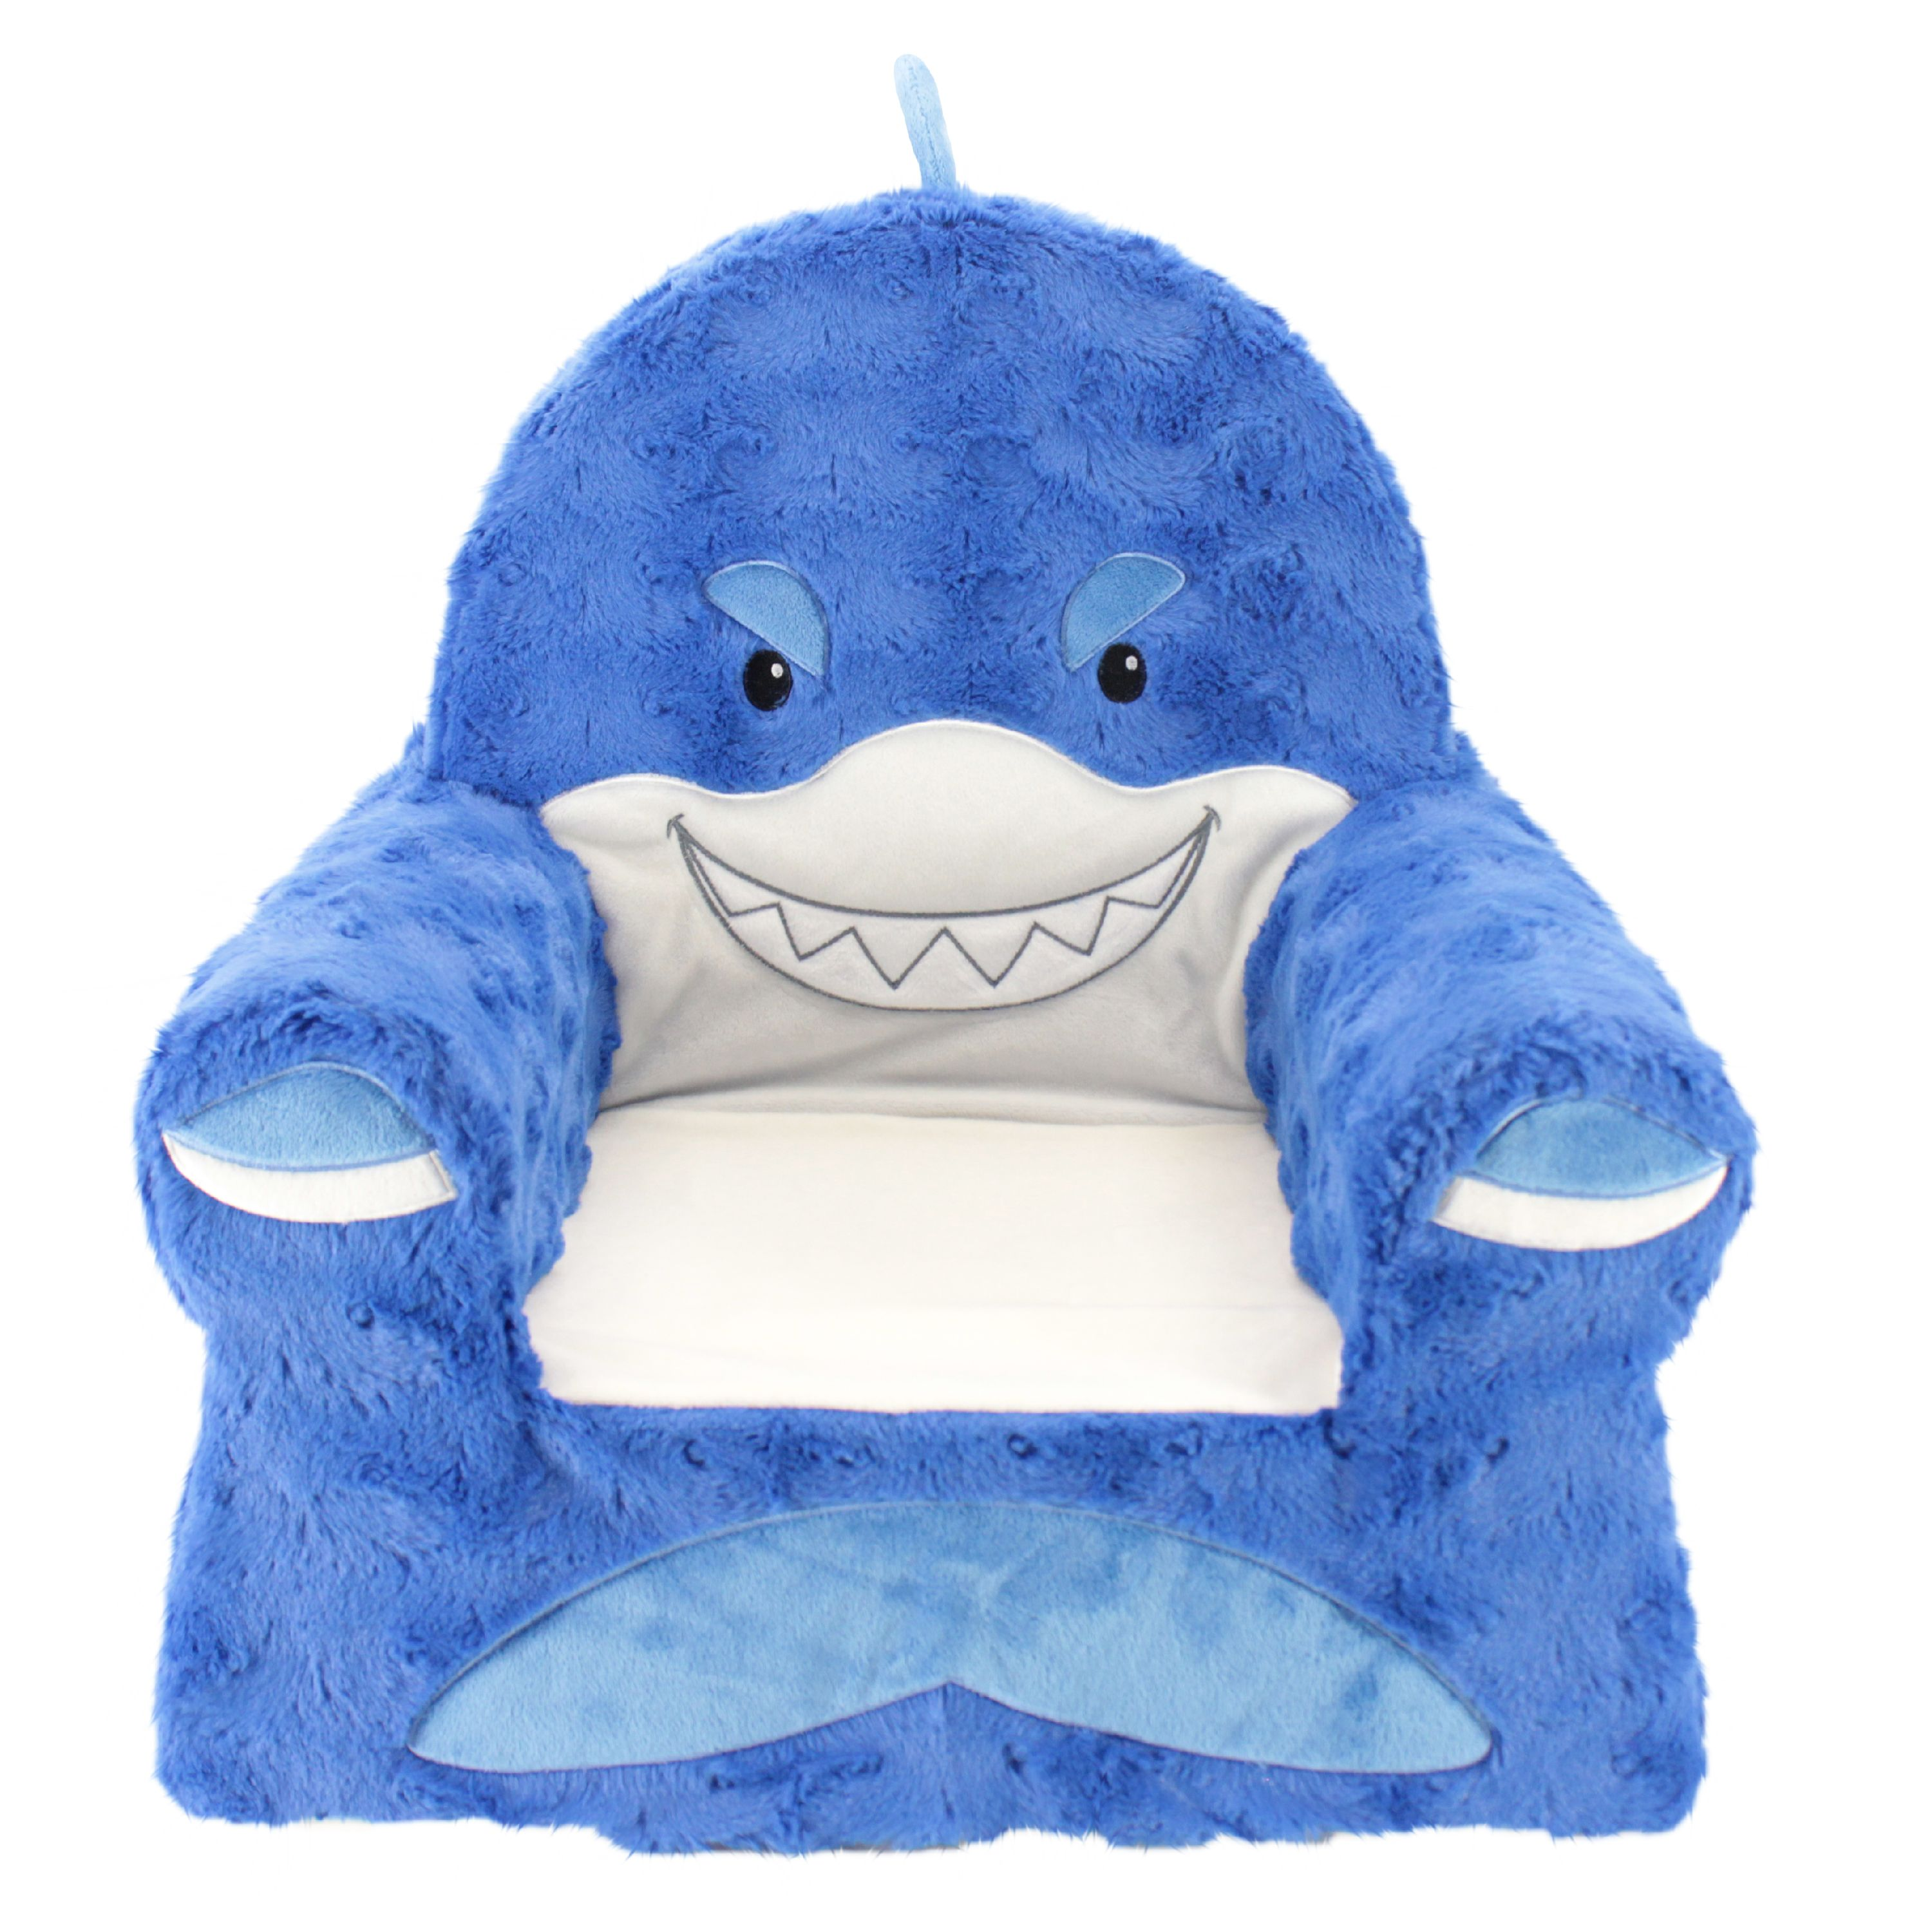 "Sweet Seats Adorable Shark Children's Chair, Standard Size, Machine Washable Removable Cover, 13""L x 18""W x 19""H"